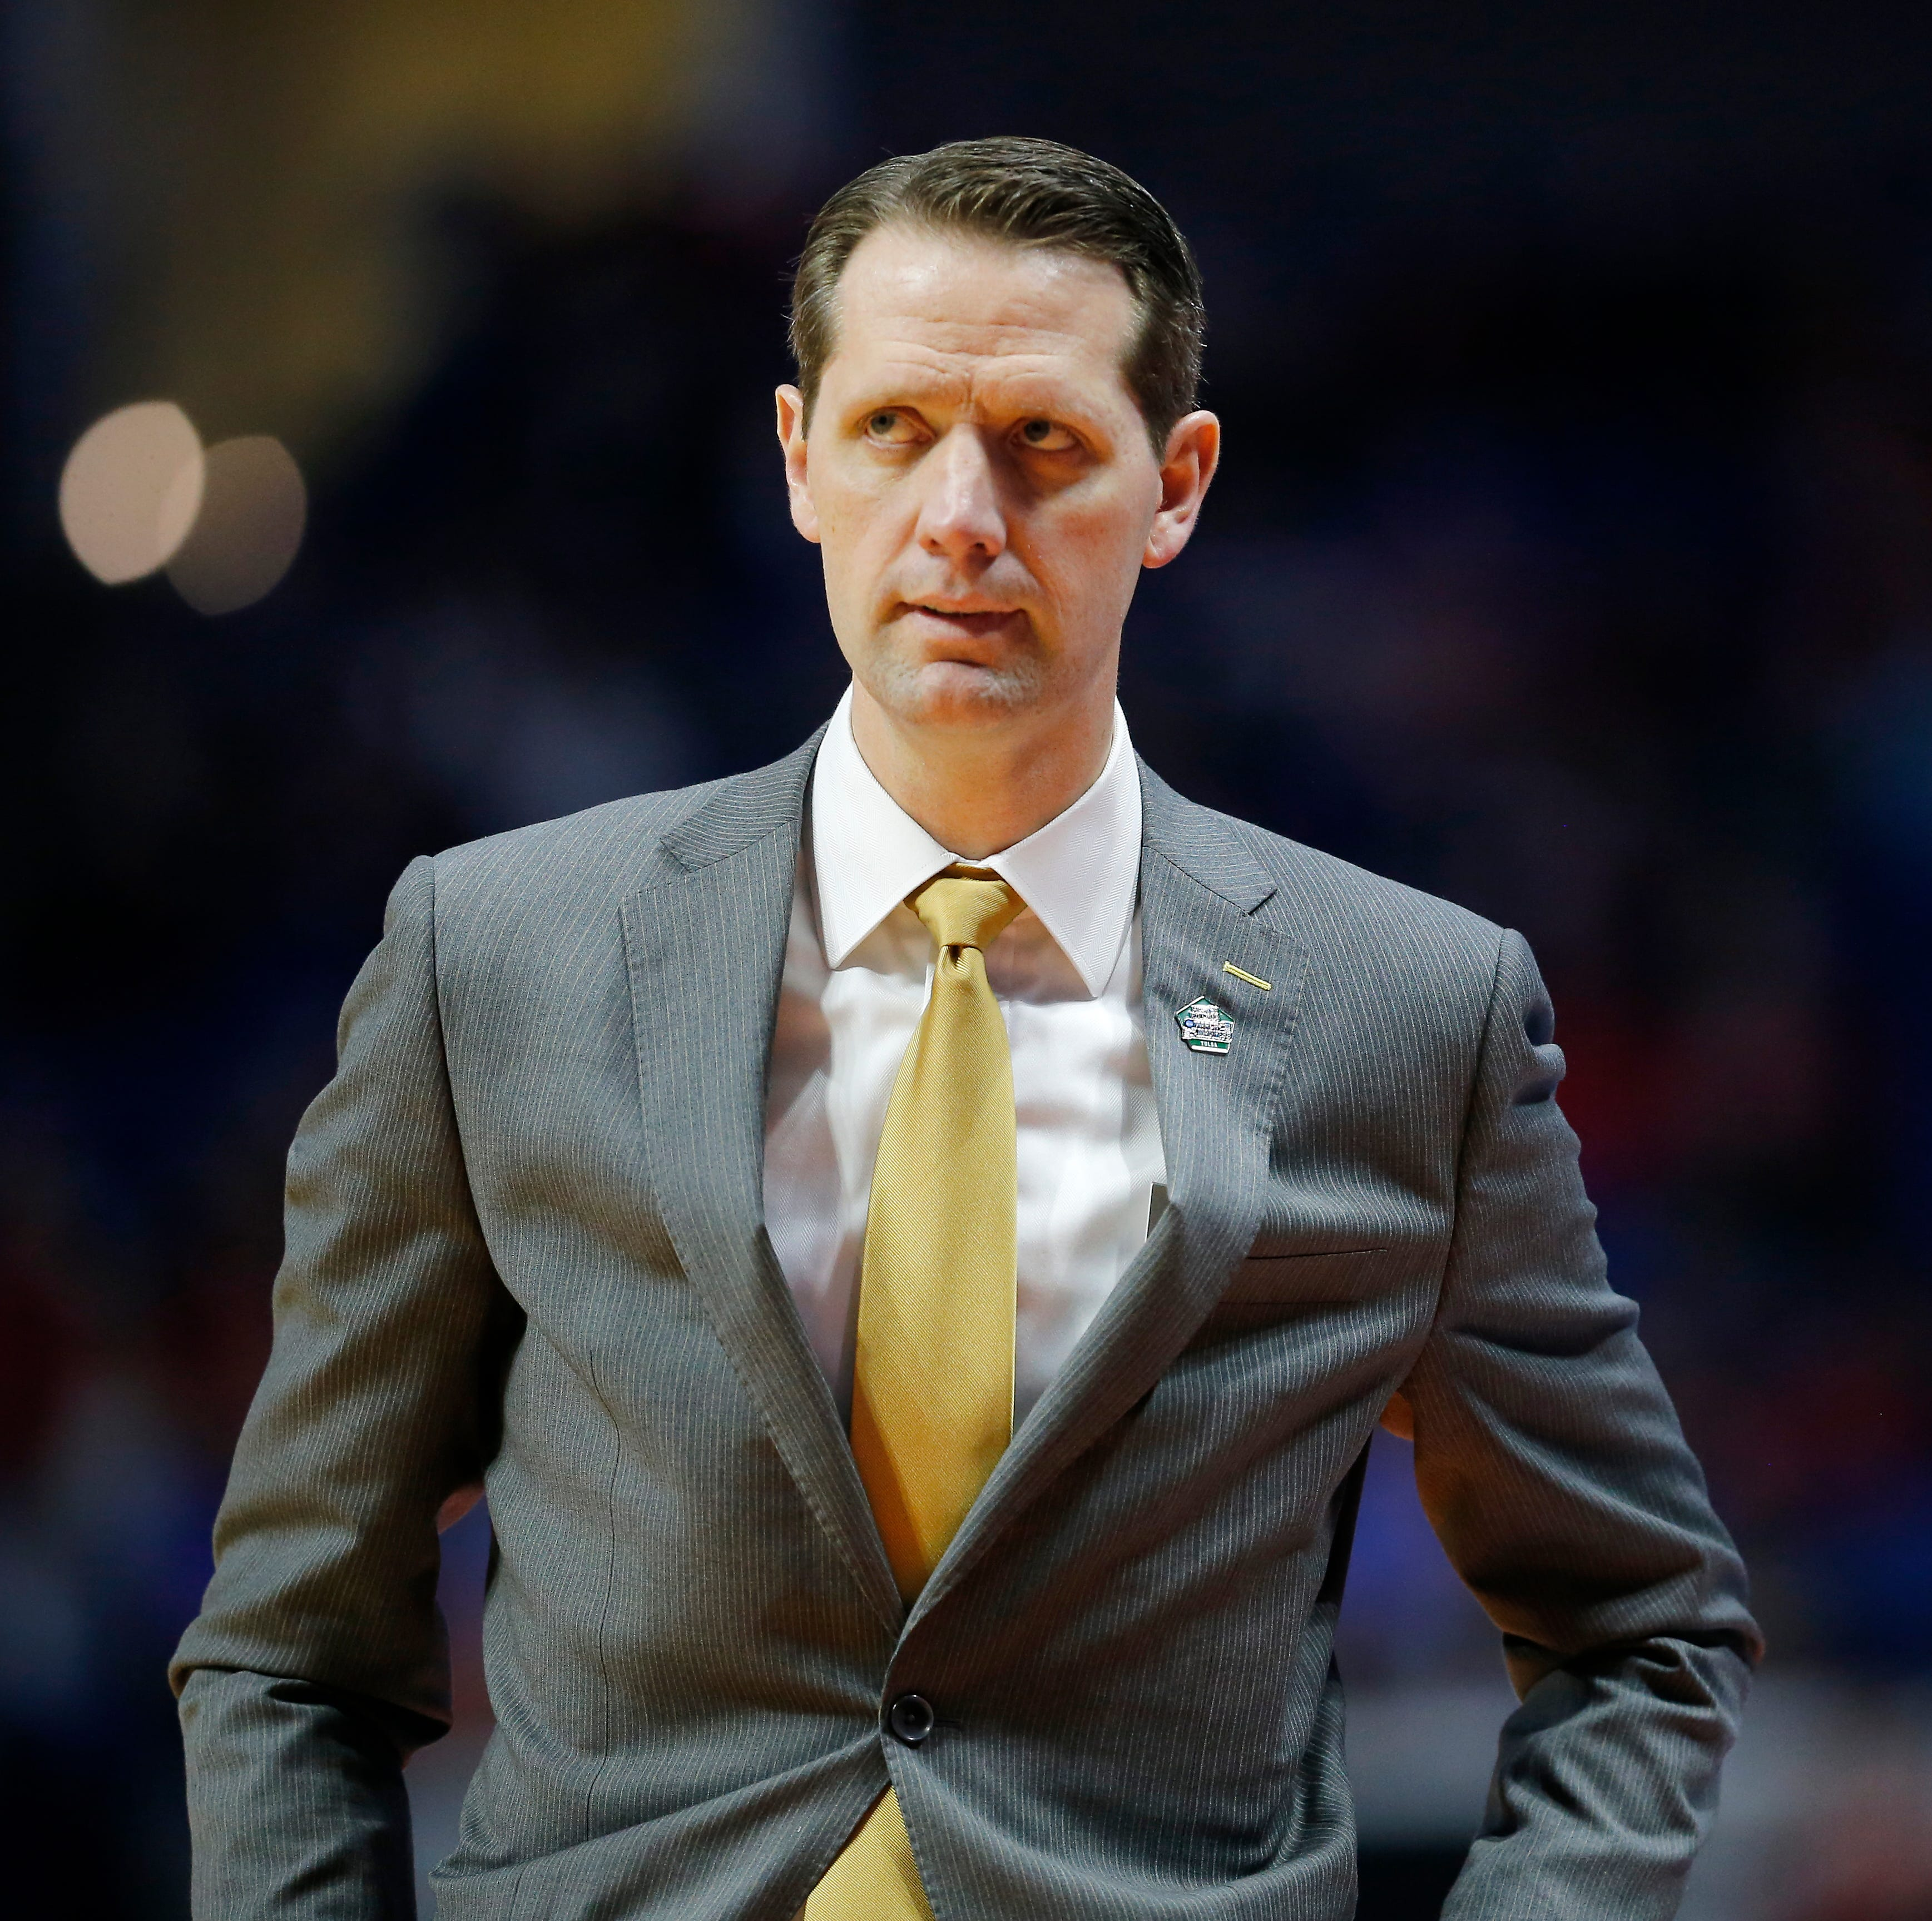 Who will the UC Bearcats go after to replace Mick Cronin? Here are 6 names to think about.